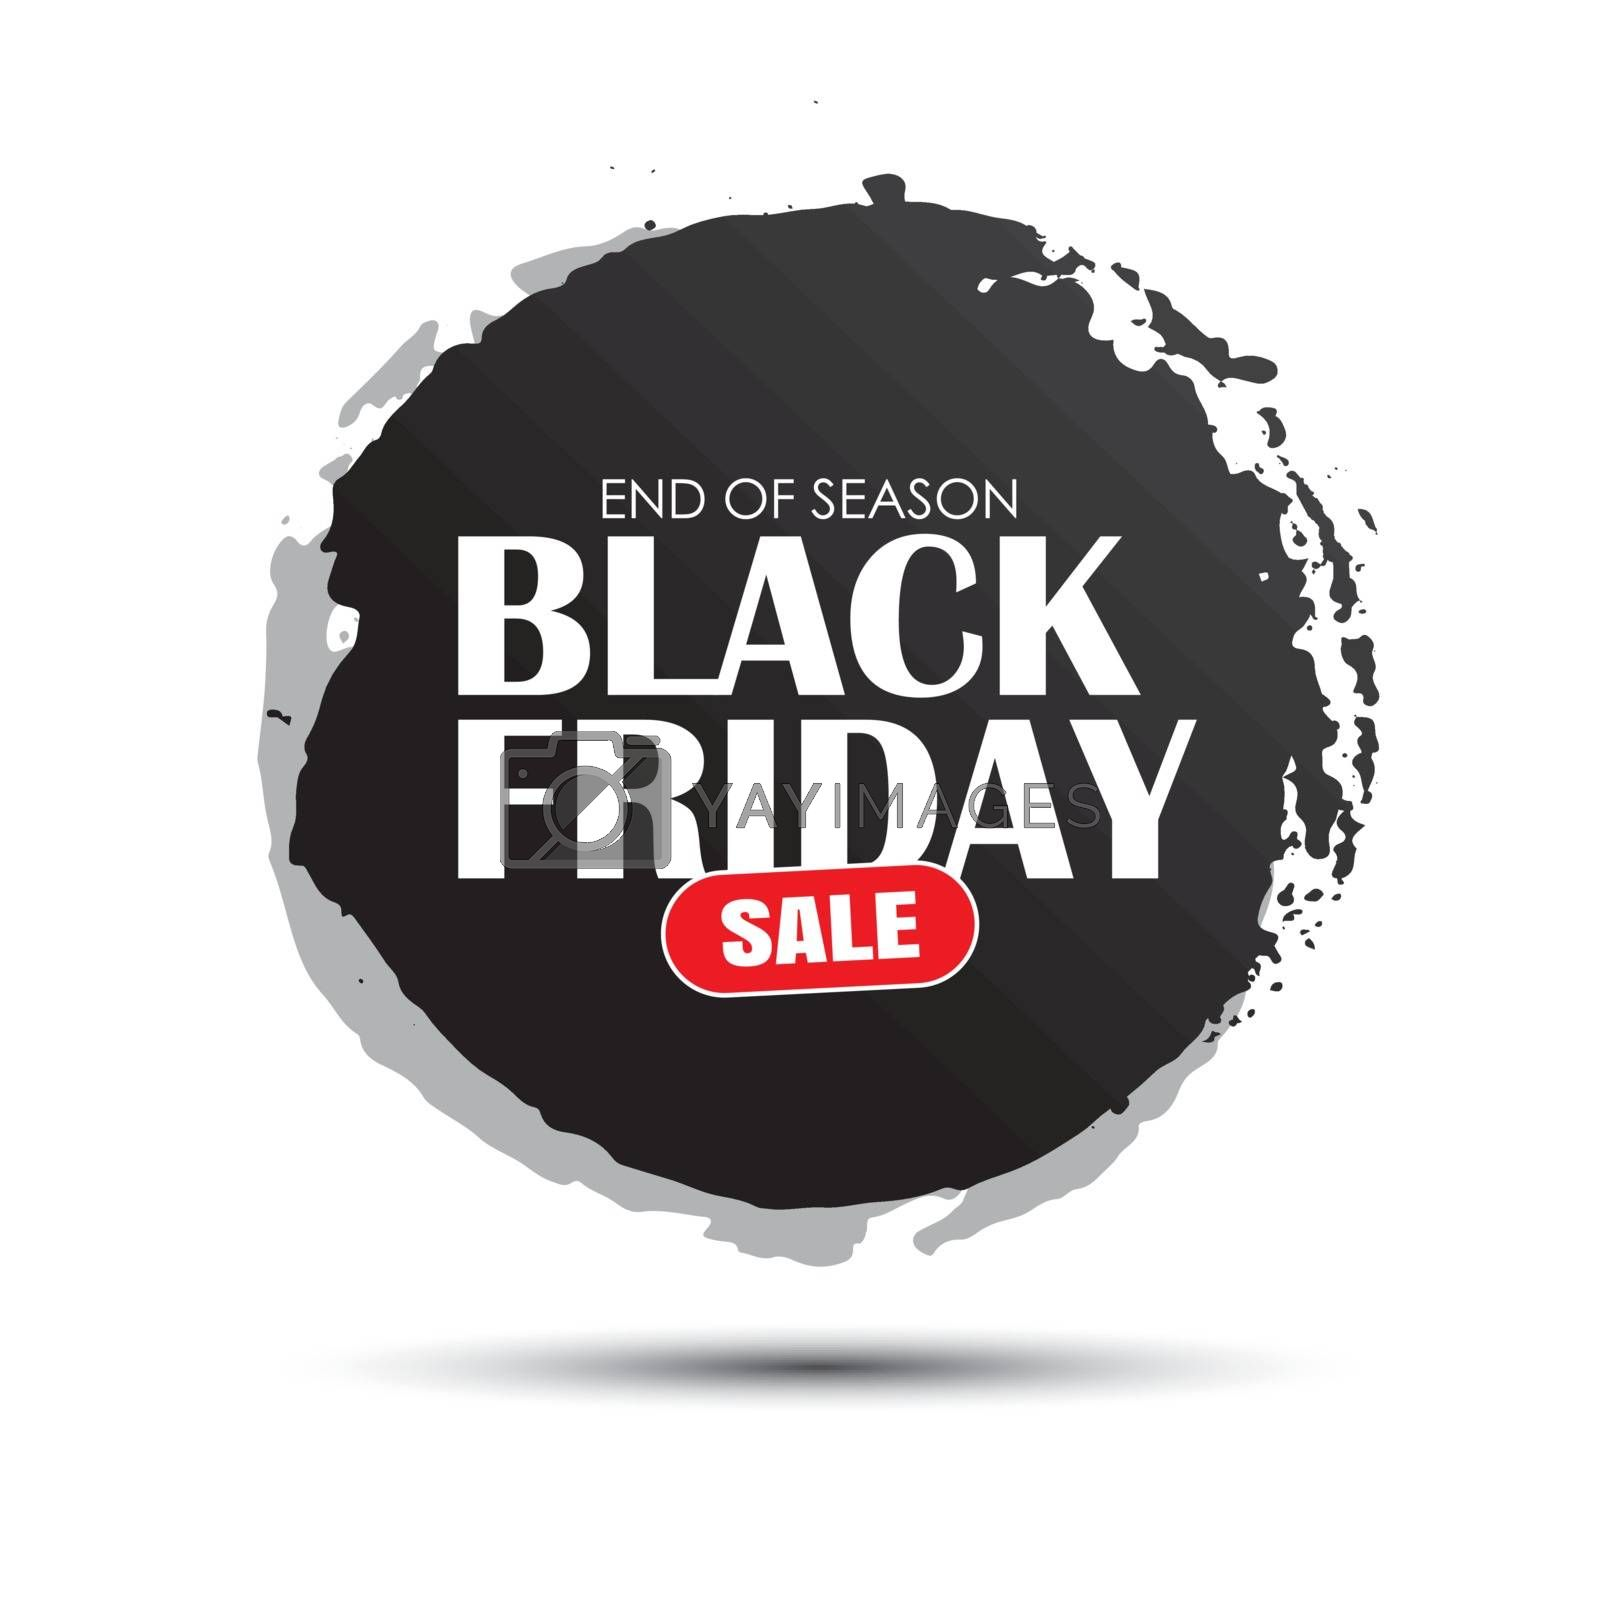 Black friday sale circle banner with white text on grunge black brush stroke. Use for discount, shopping, promotion, advertising.